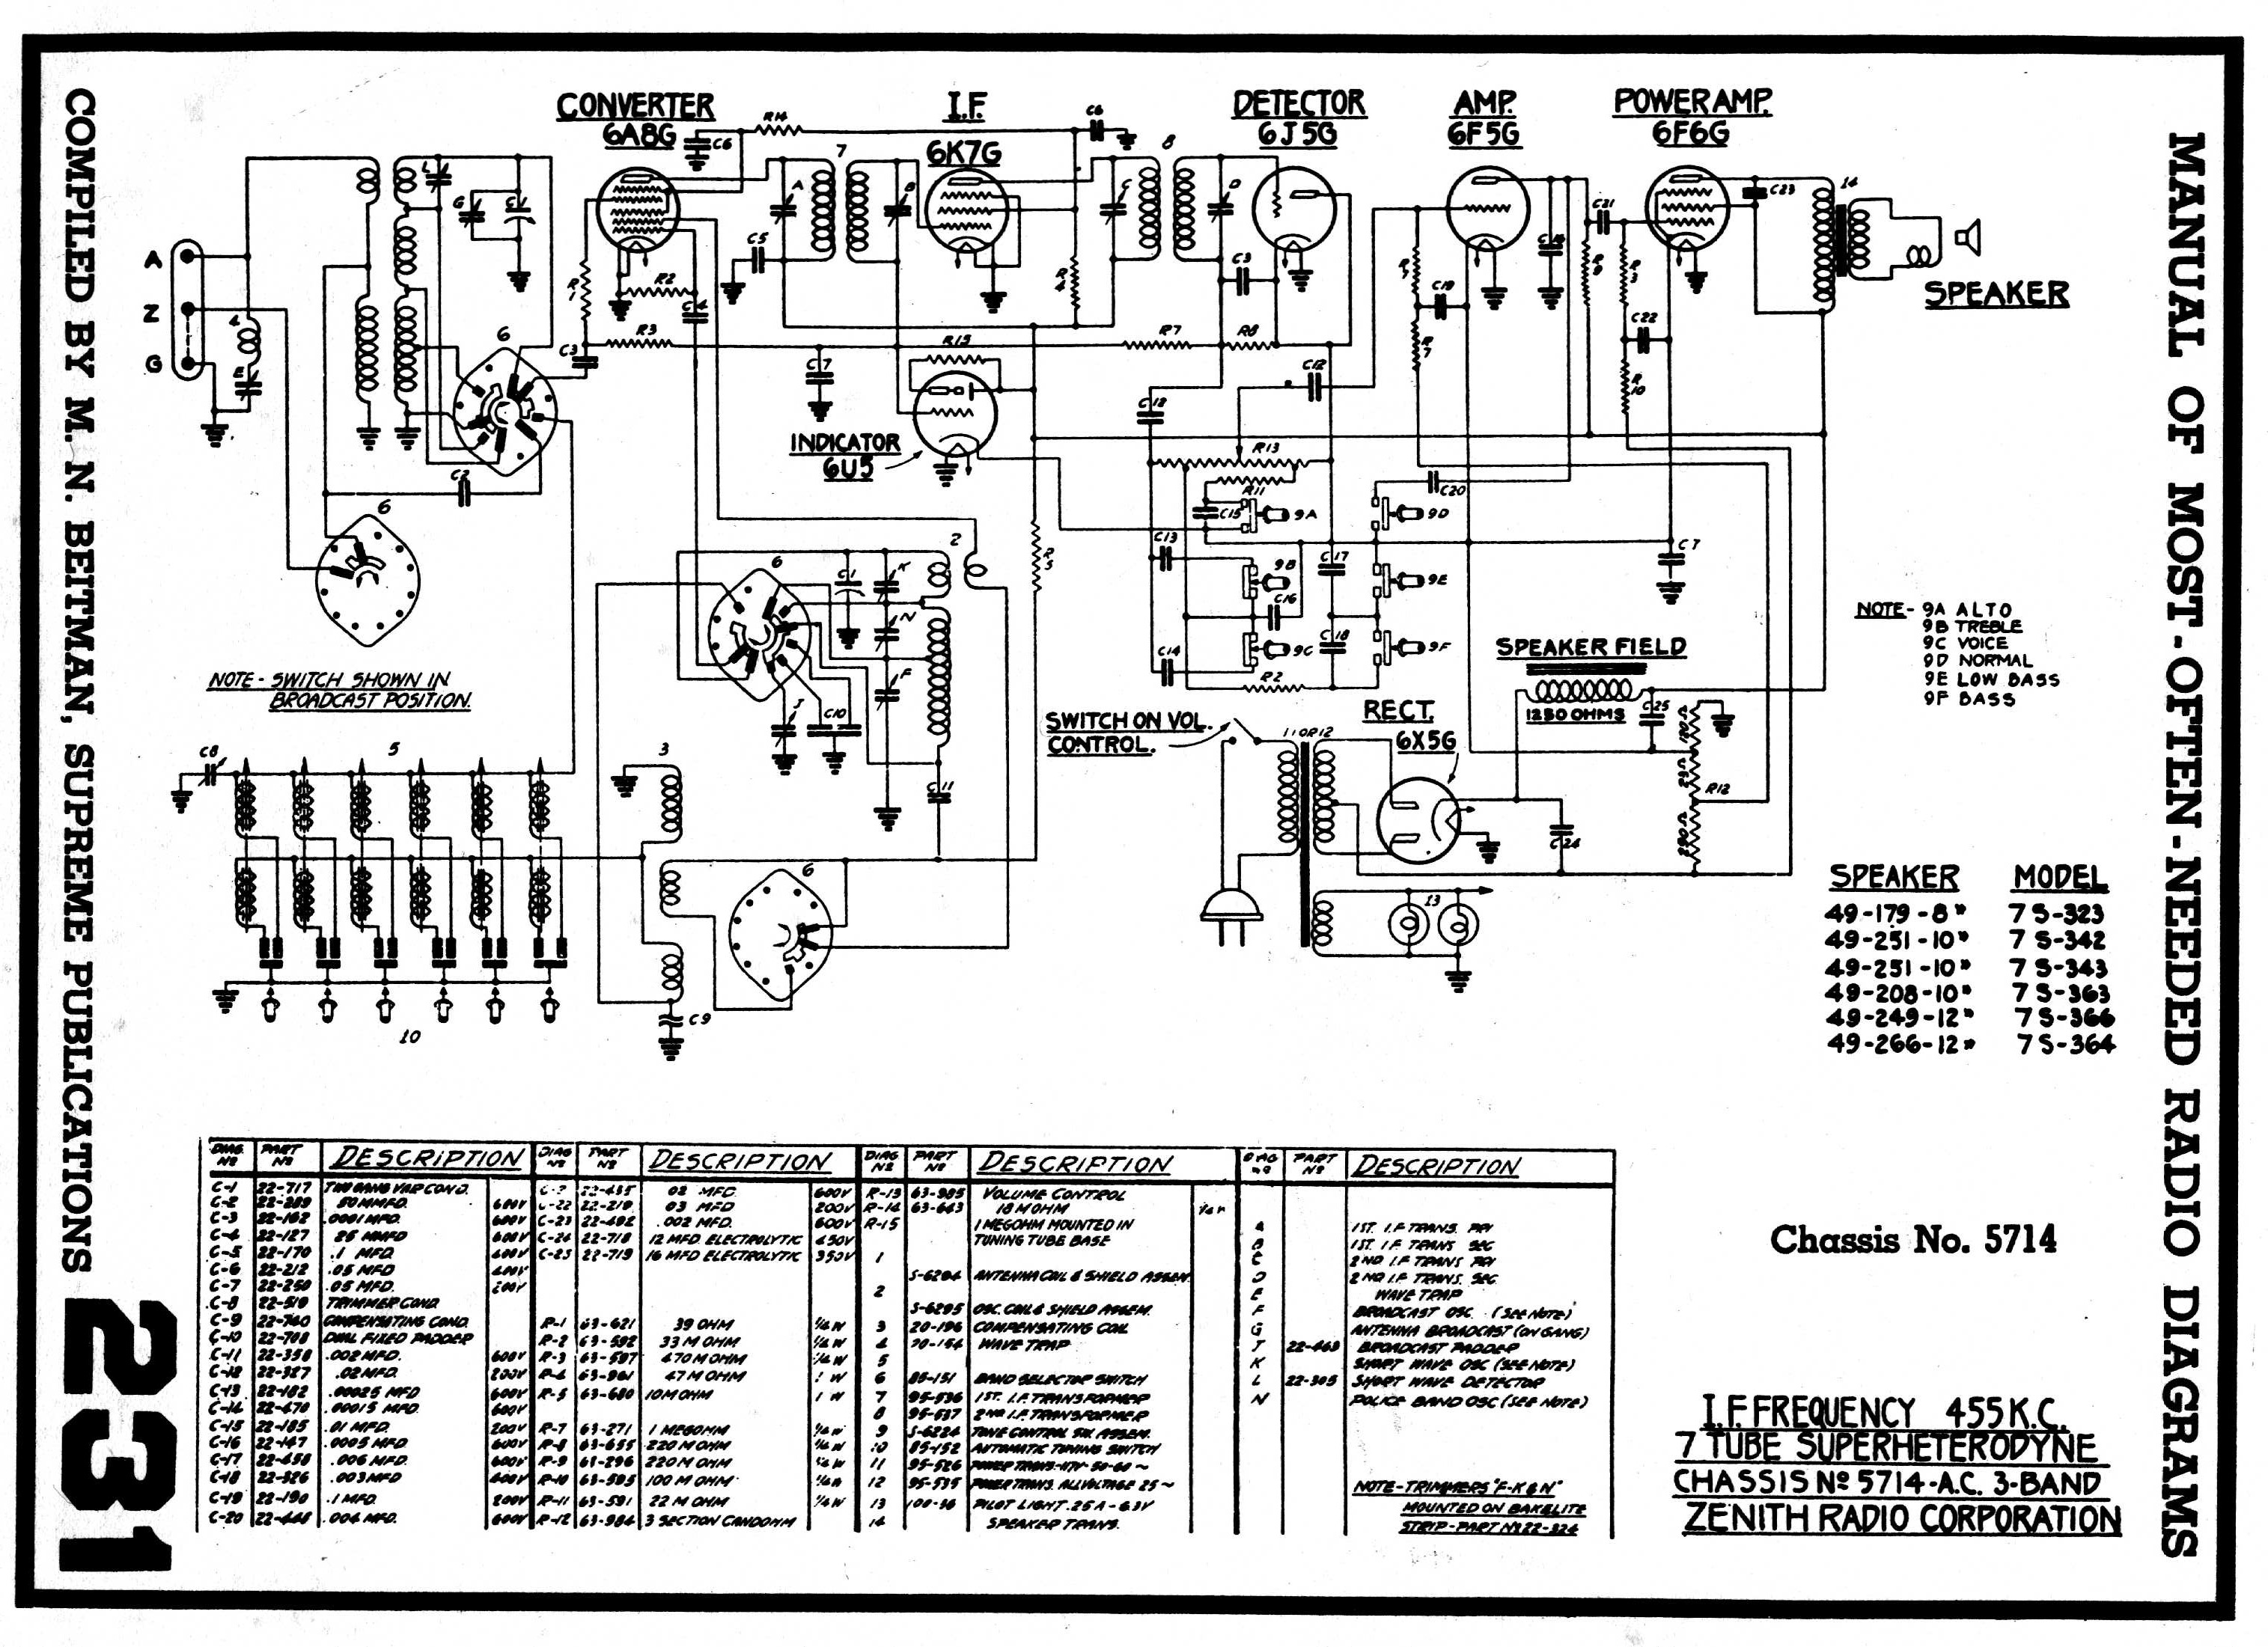 Diagrams And Service Data For Zenith 7 S 342